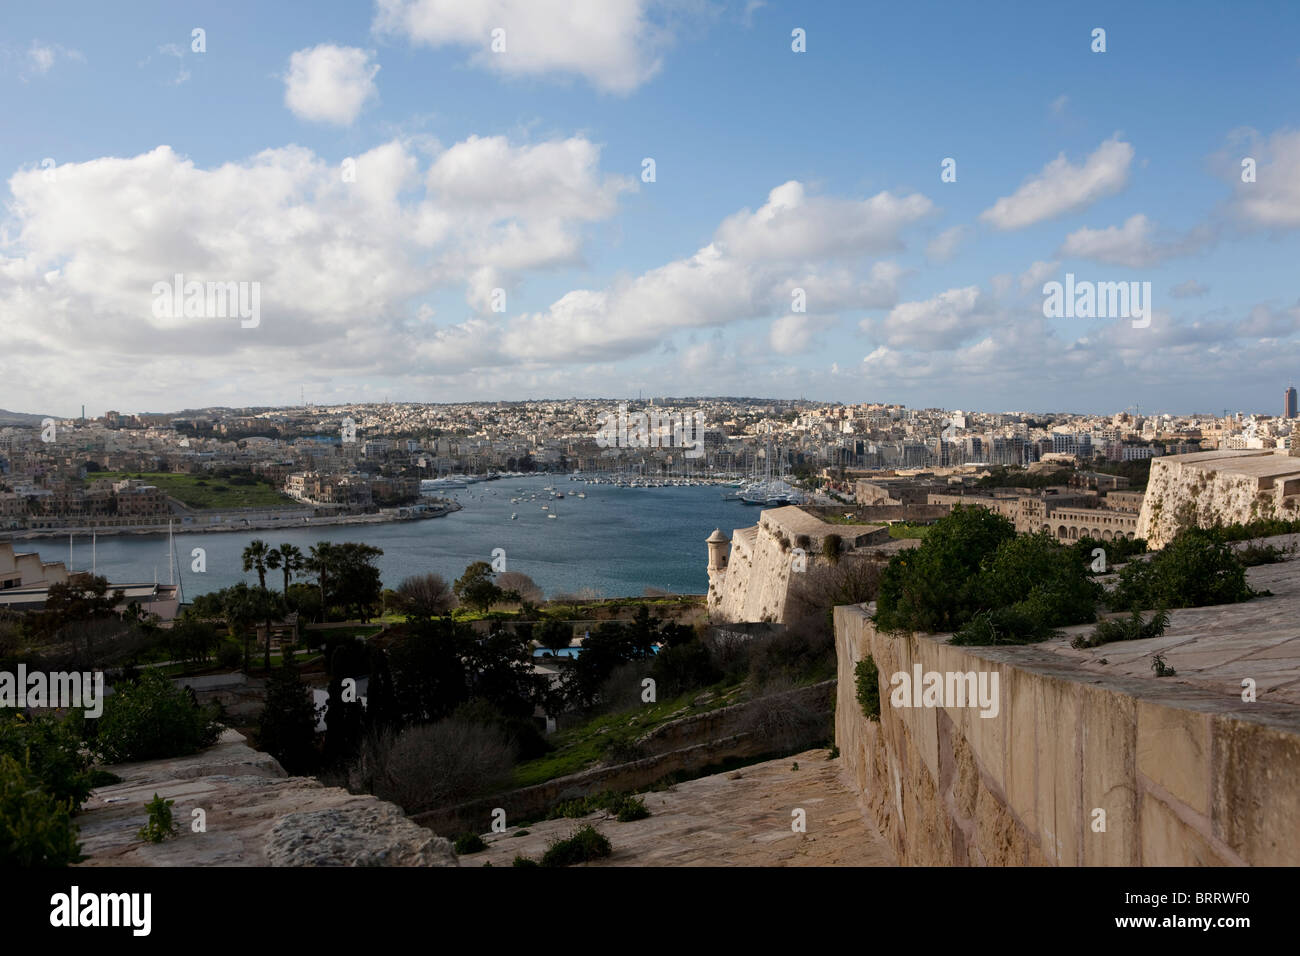 View of Marsamxett Harbour and Lazzaretto Creek from Valletta, St Andrew's Bastion in the front, Valletta, Malta, - Stock Image